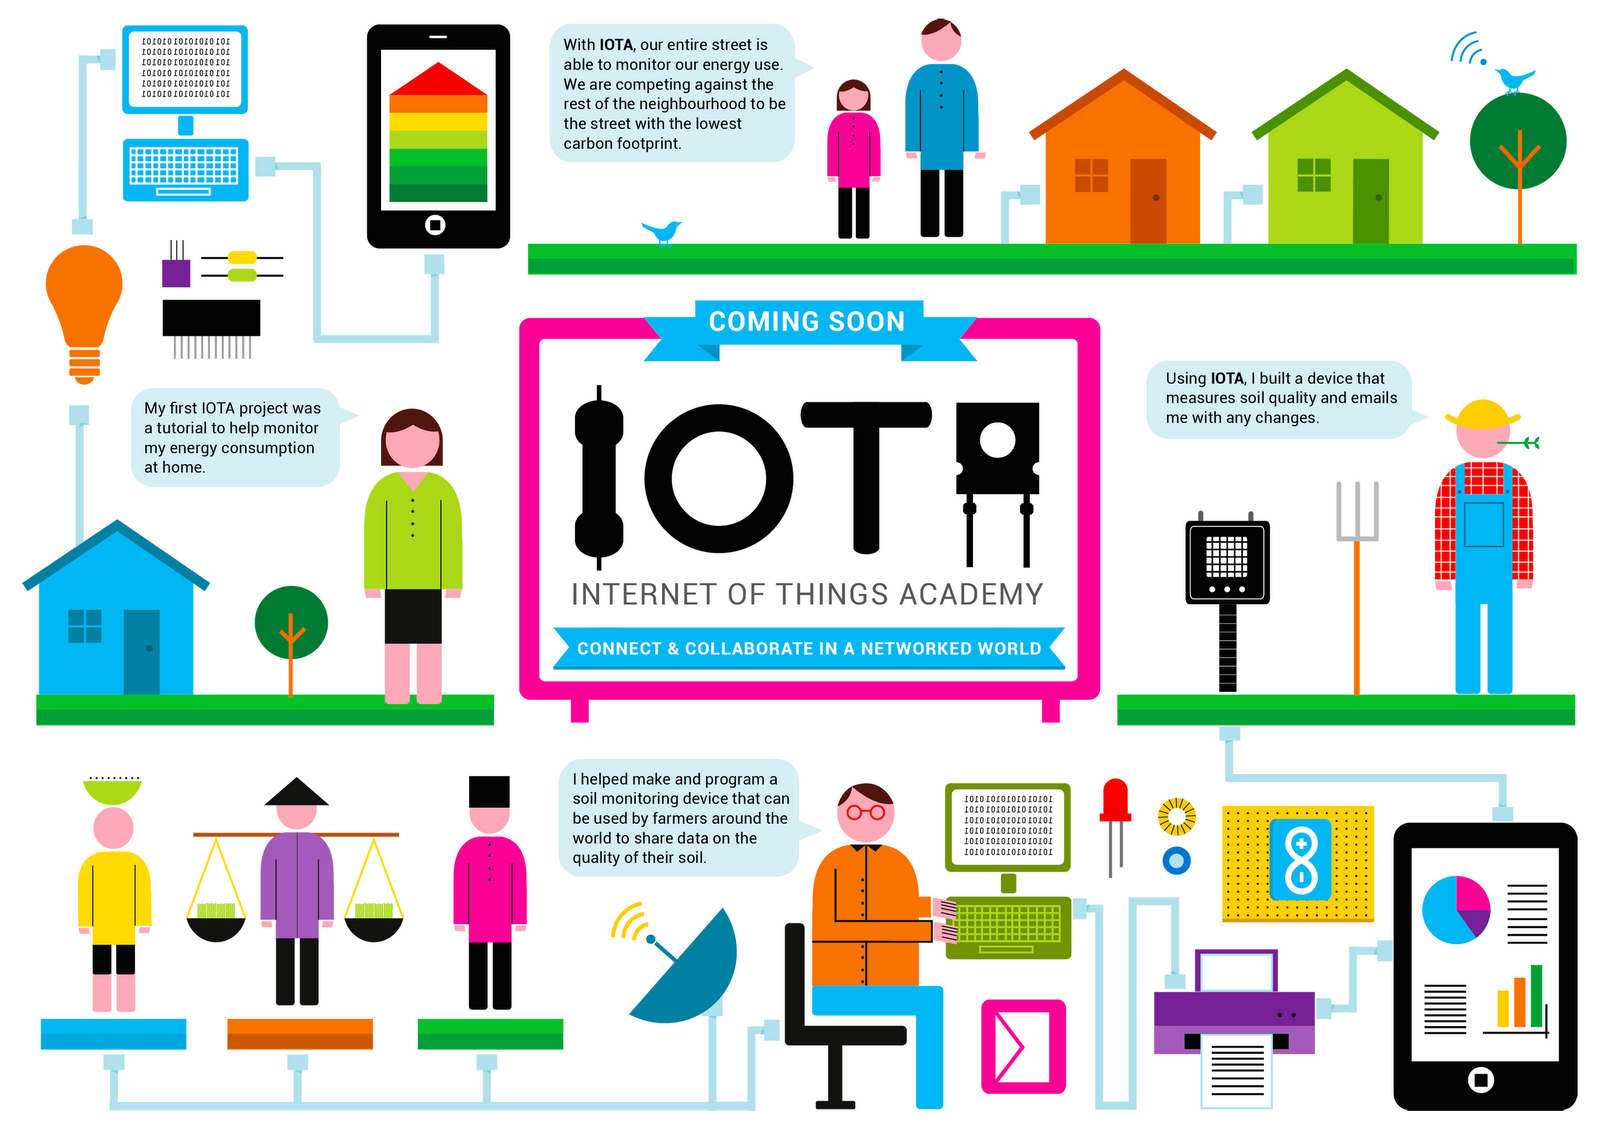 Protocols Related to Internet of Things (IoT)